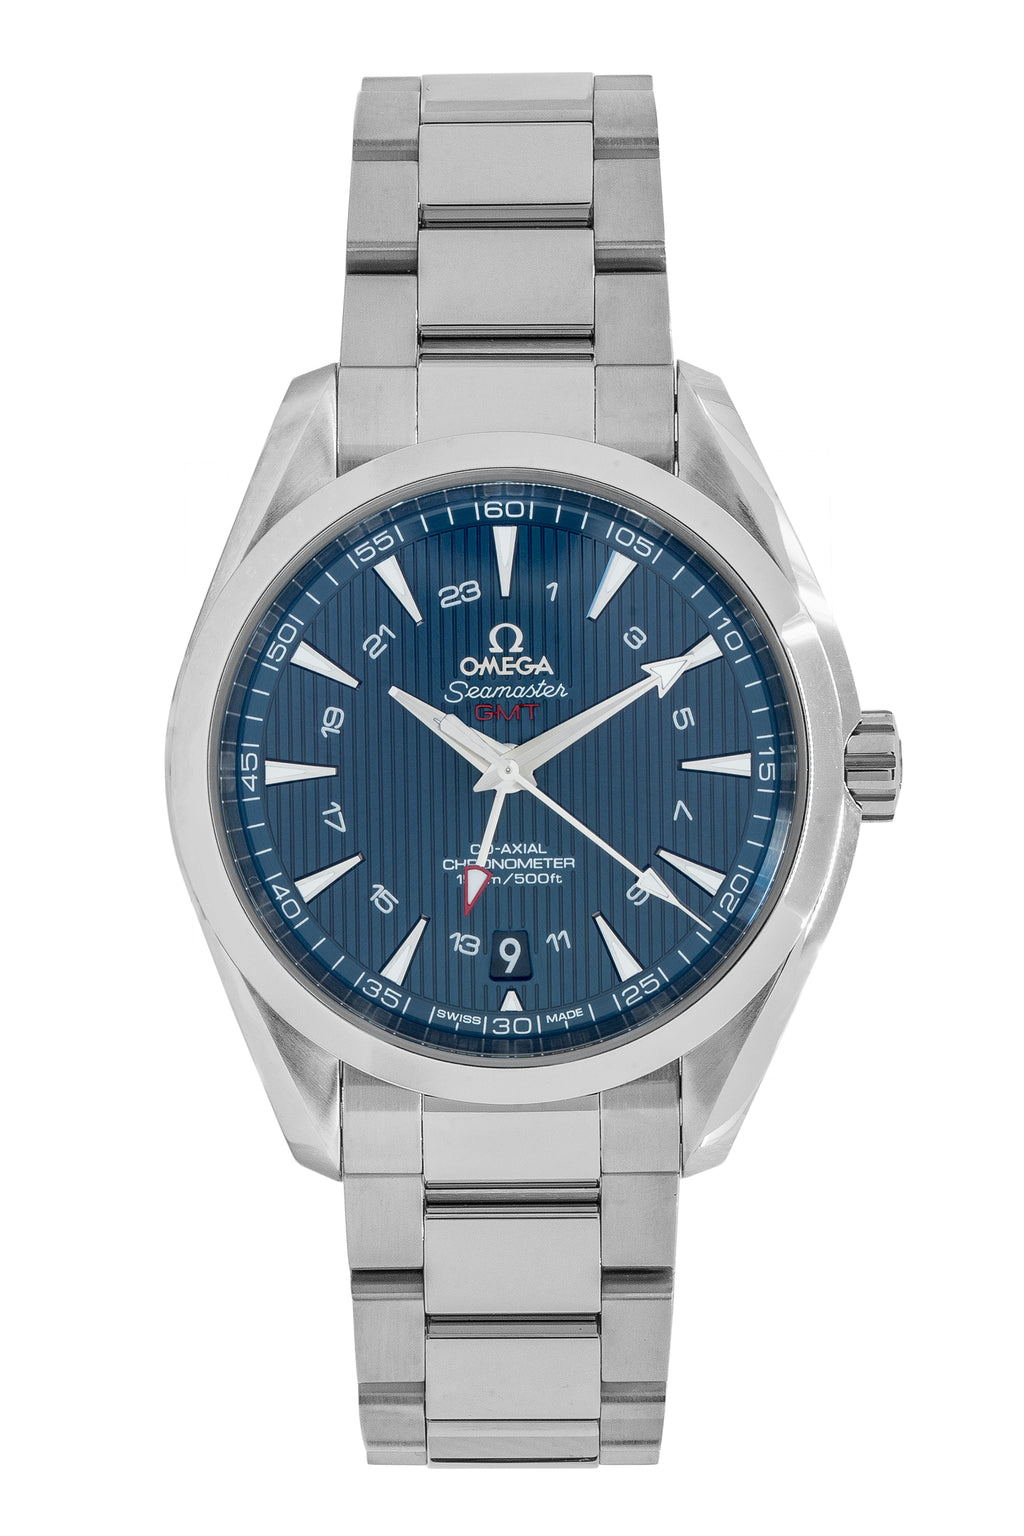 OMEGA Seamaster Aqua Terra 231.10.43.22.03.001 Co-Axial GMT Watch - Blue Dial